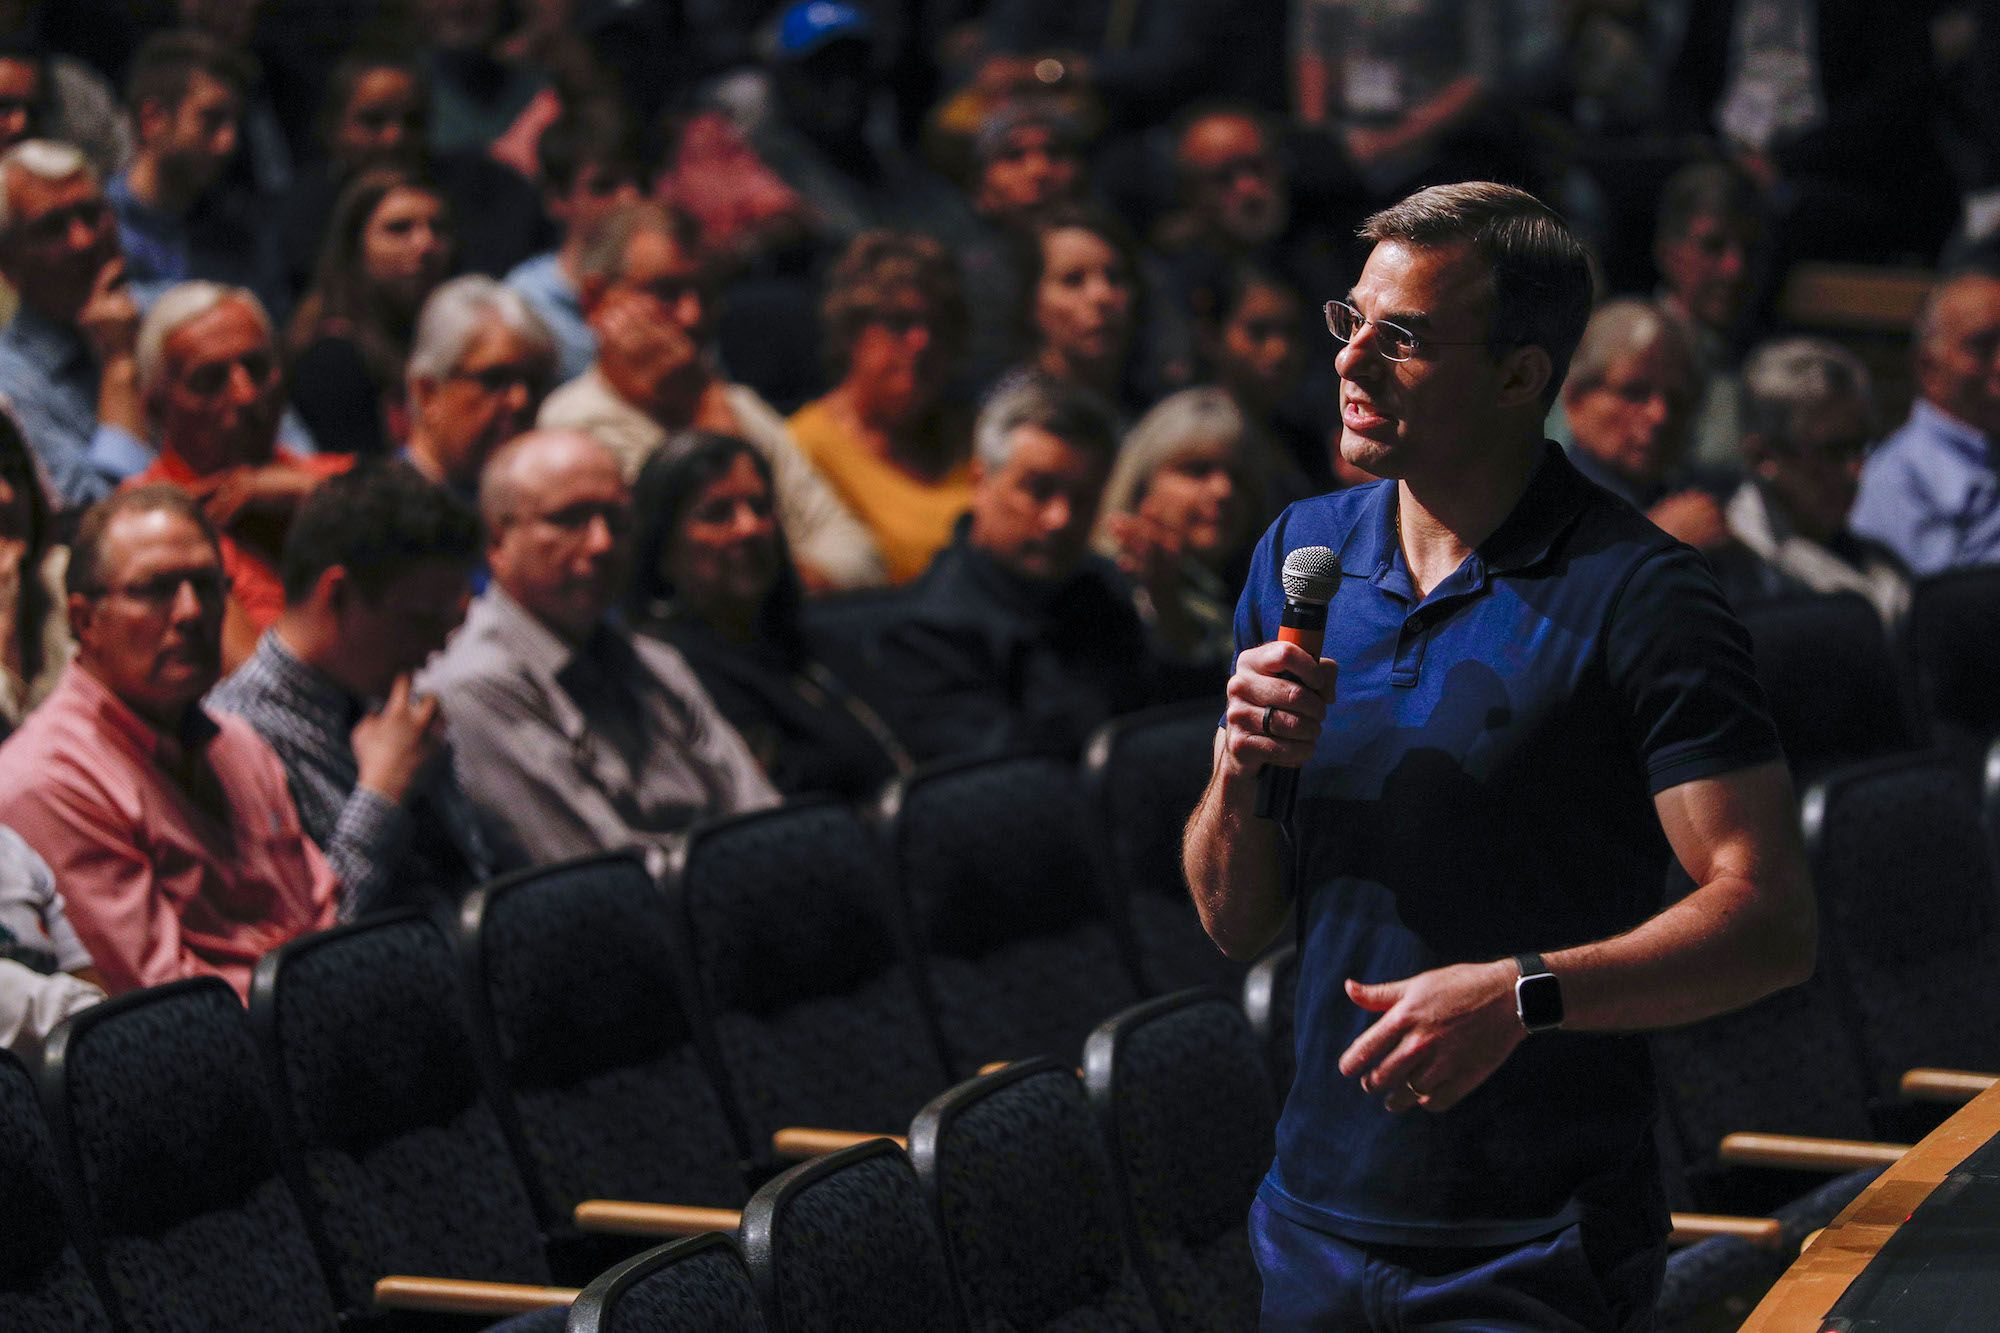 Justin Amash Brought the Receipts When Two Trump Supporters Came at His Impeachment Claims